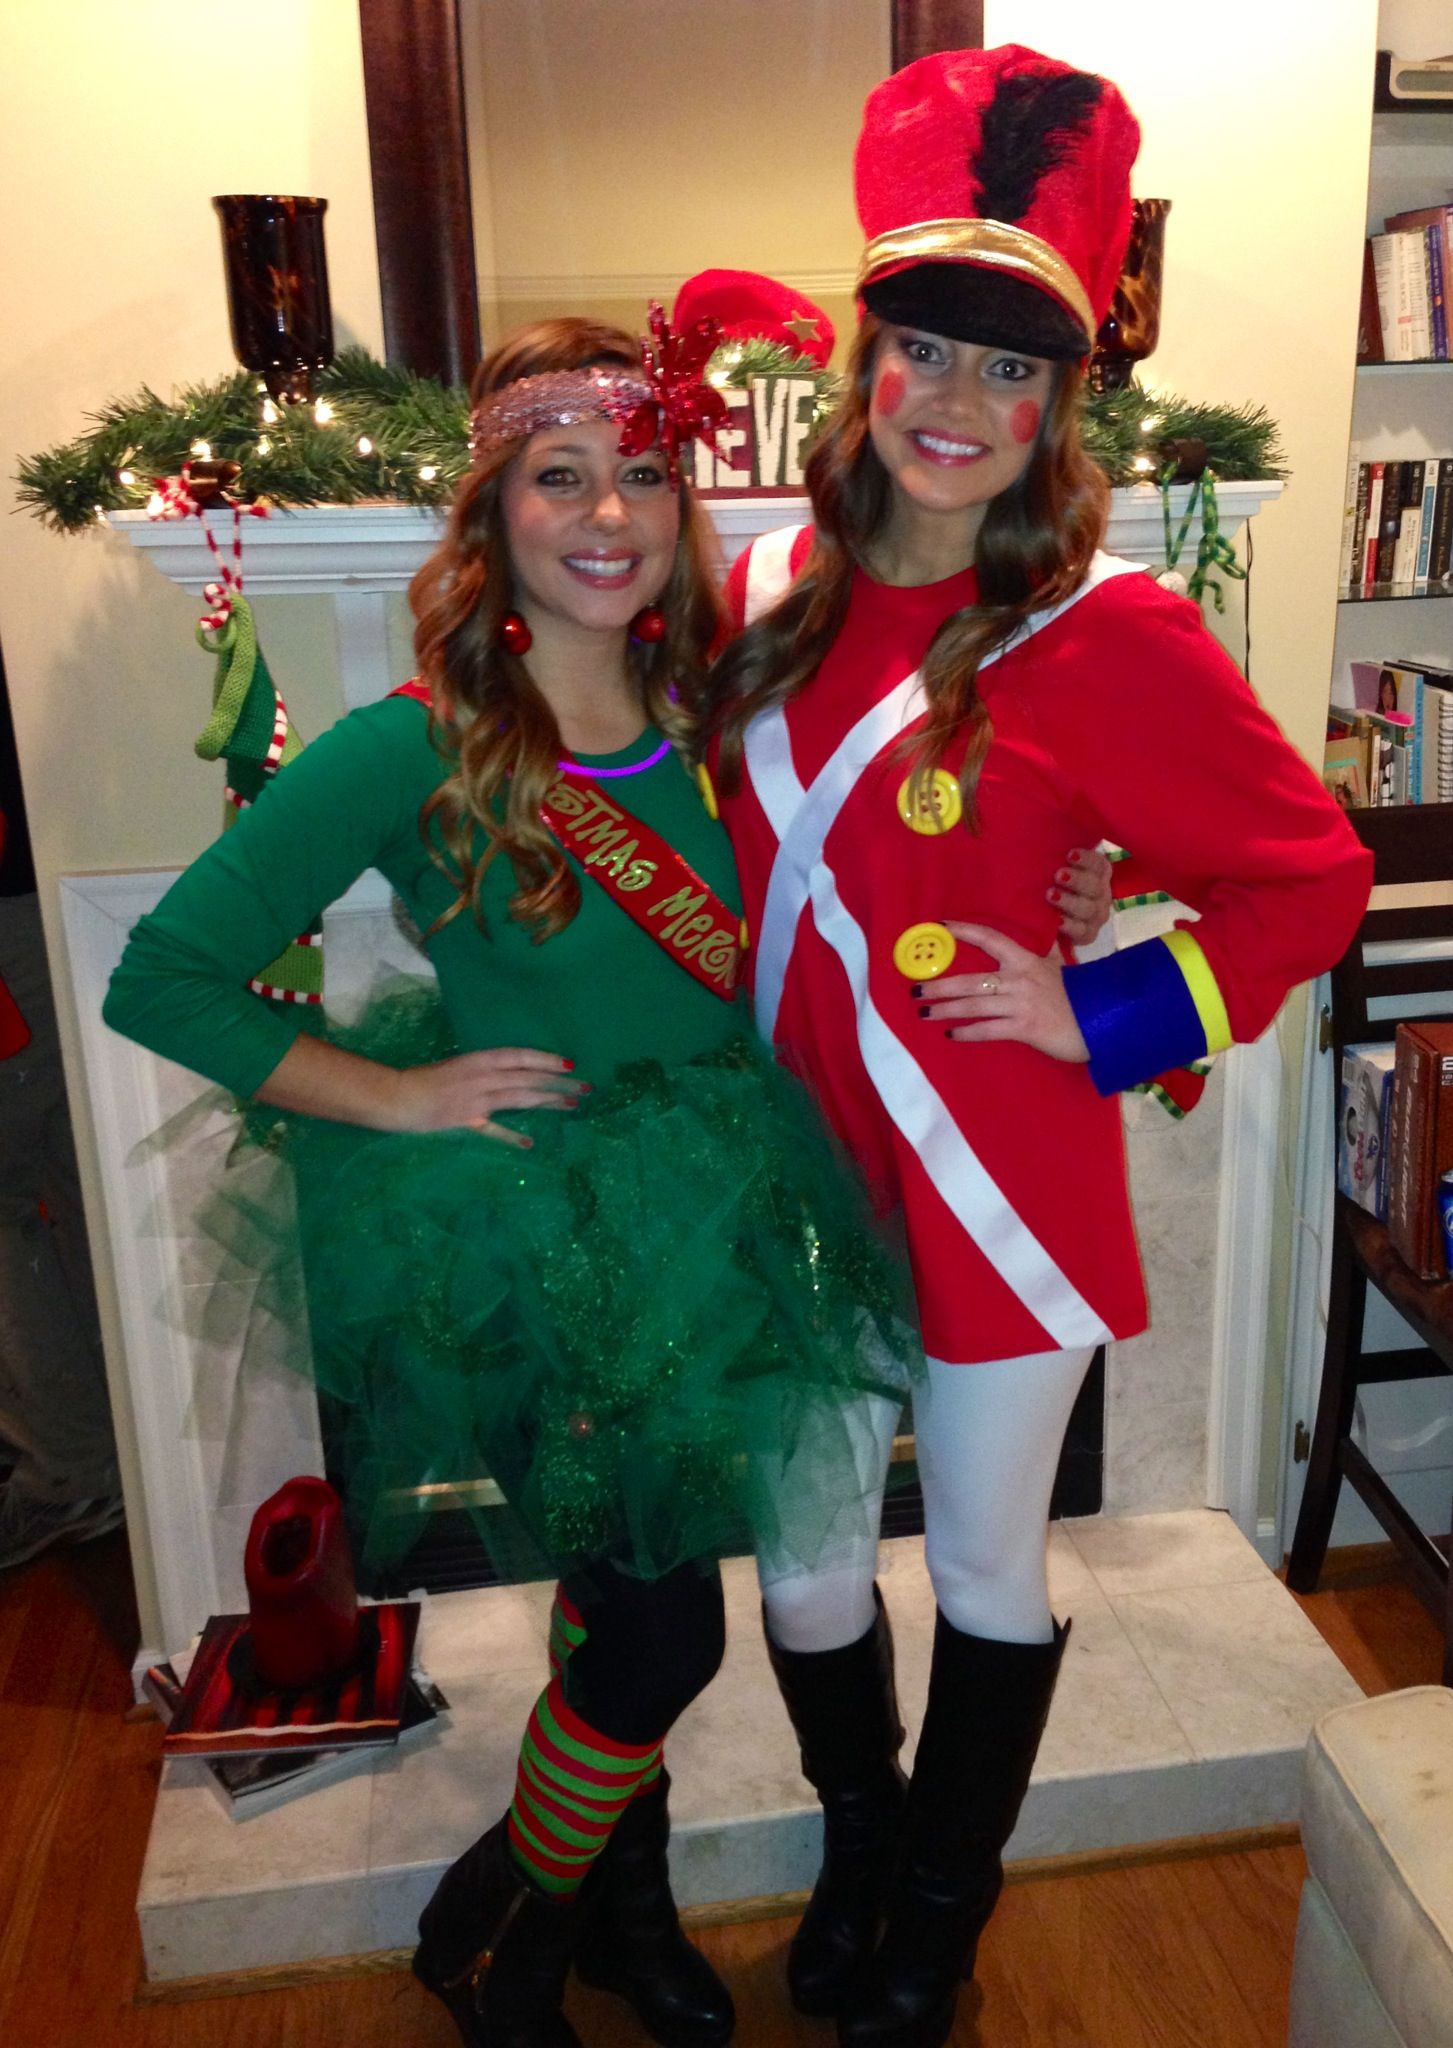 Fun Christmas party outfits Christmas party outfits